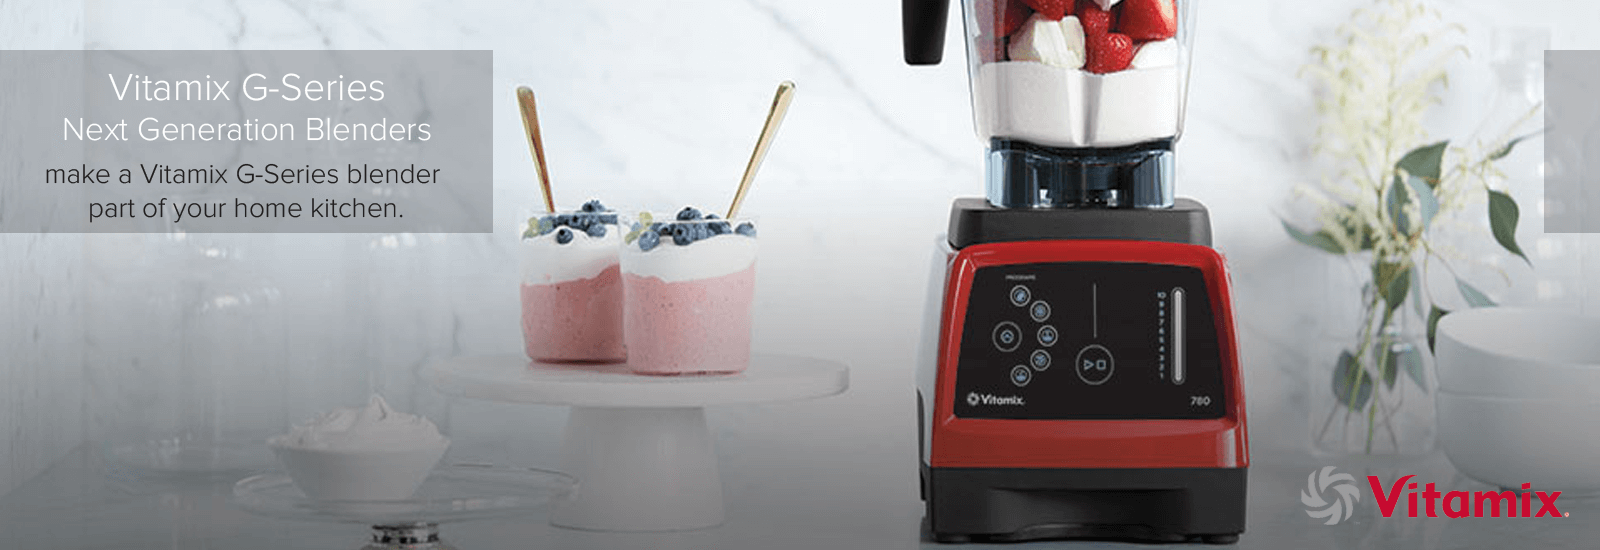 Vitamix G-series banner